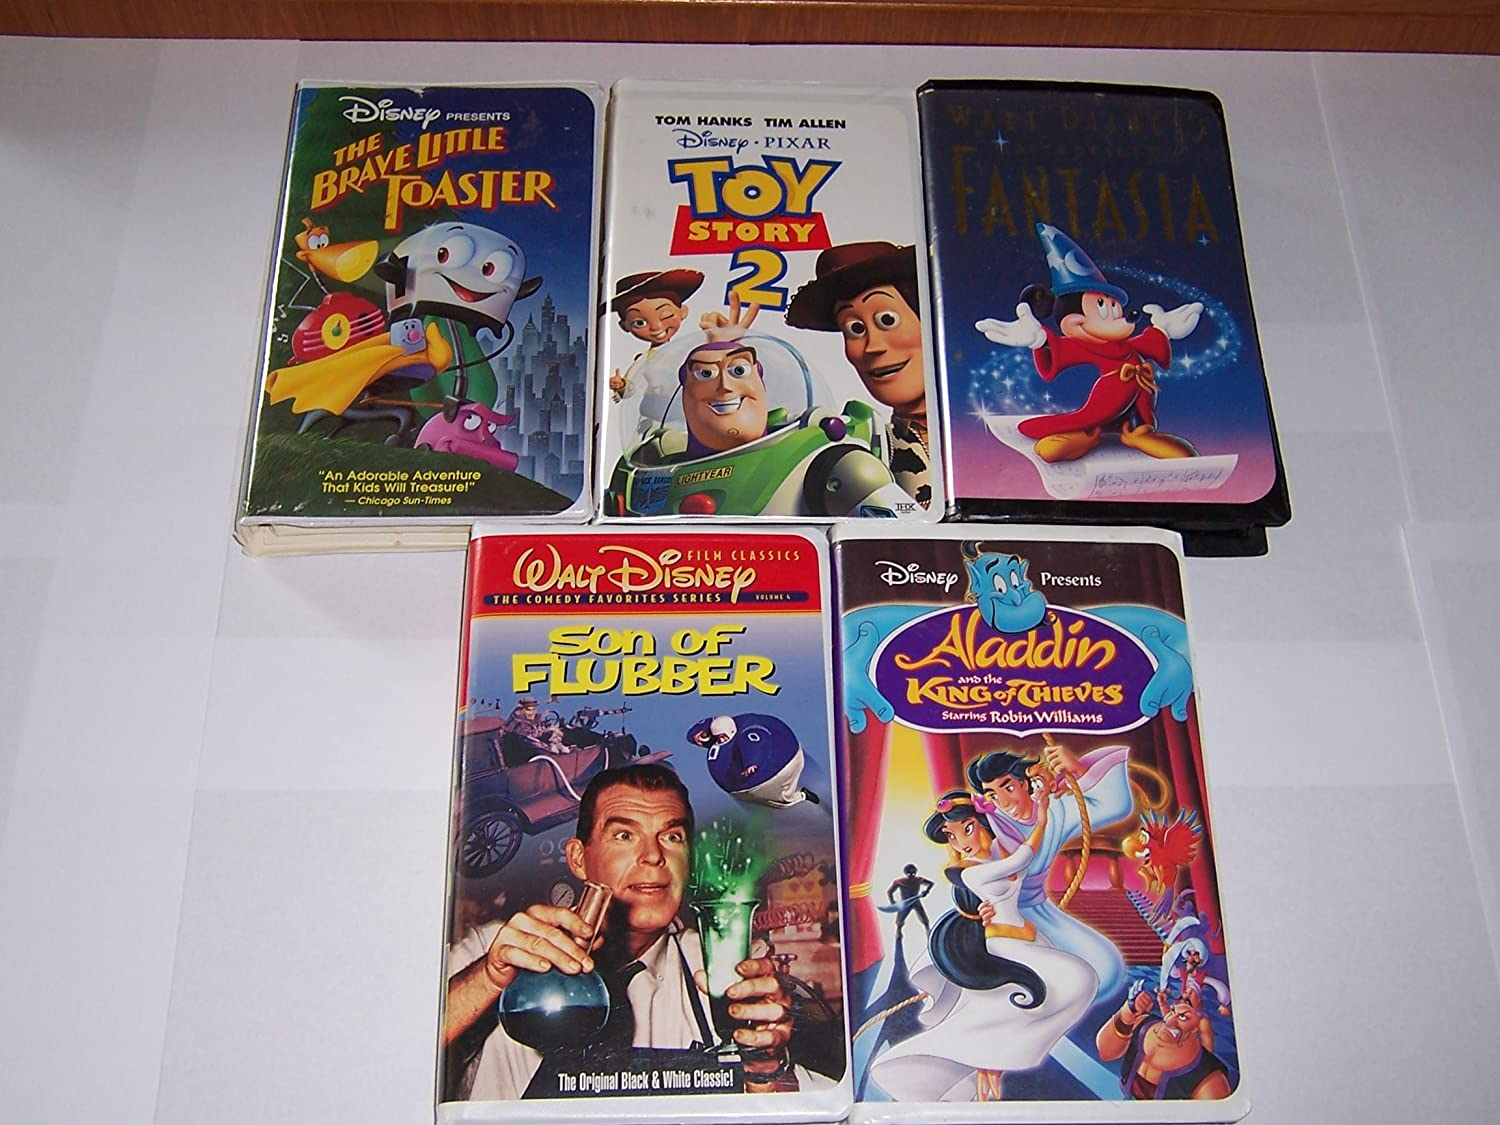 5 Disney VHS bundle (Toy Story 2 / Fantasia / Son of Flubber / Alladin and the King of Thieves / The Brave Little Toaster)